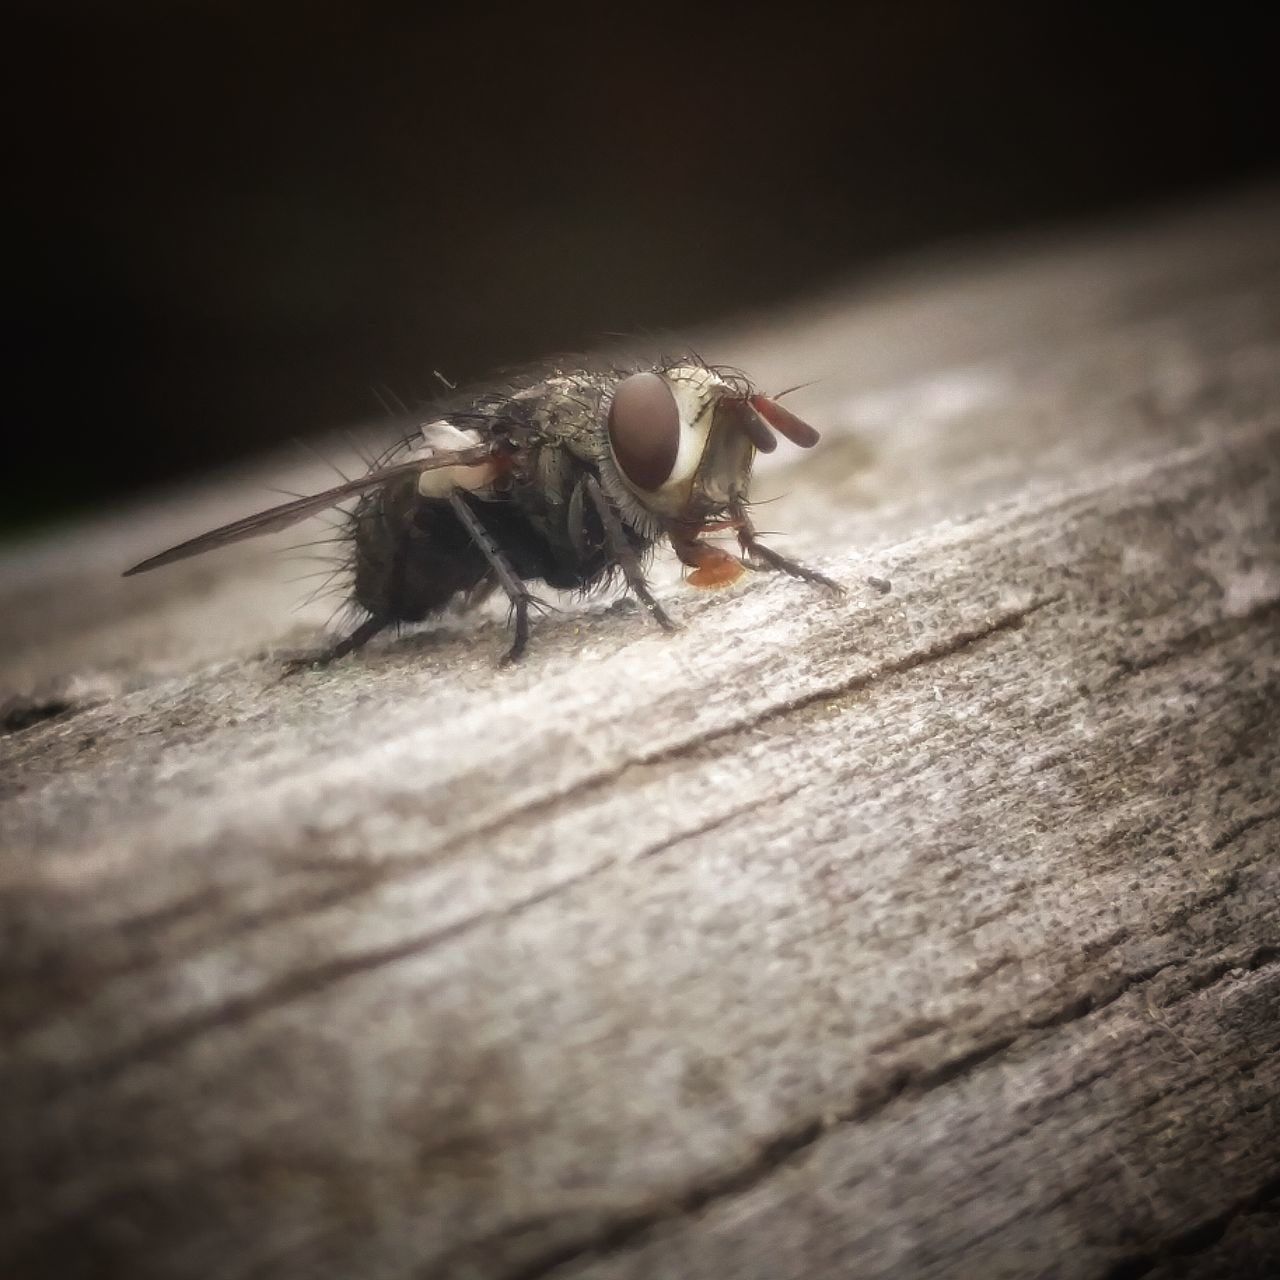 animal themes, one animal, animals in the wild, selective focus, animal wildlife, wood - material, insect, close-up, no people, outdoors, day, nature